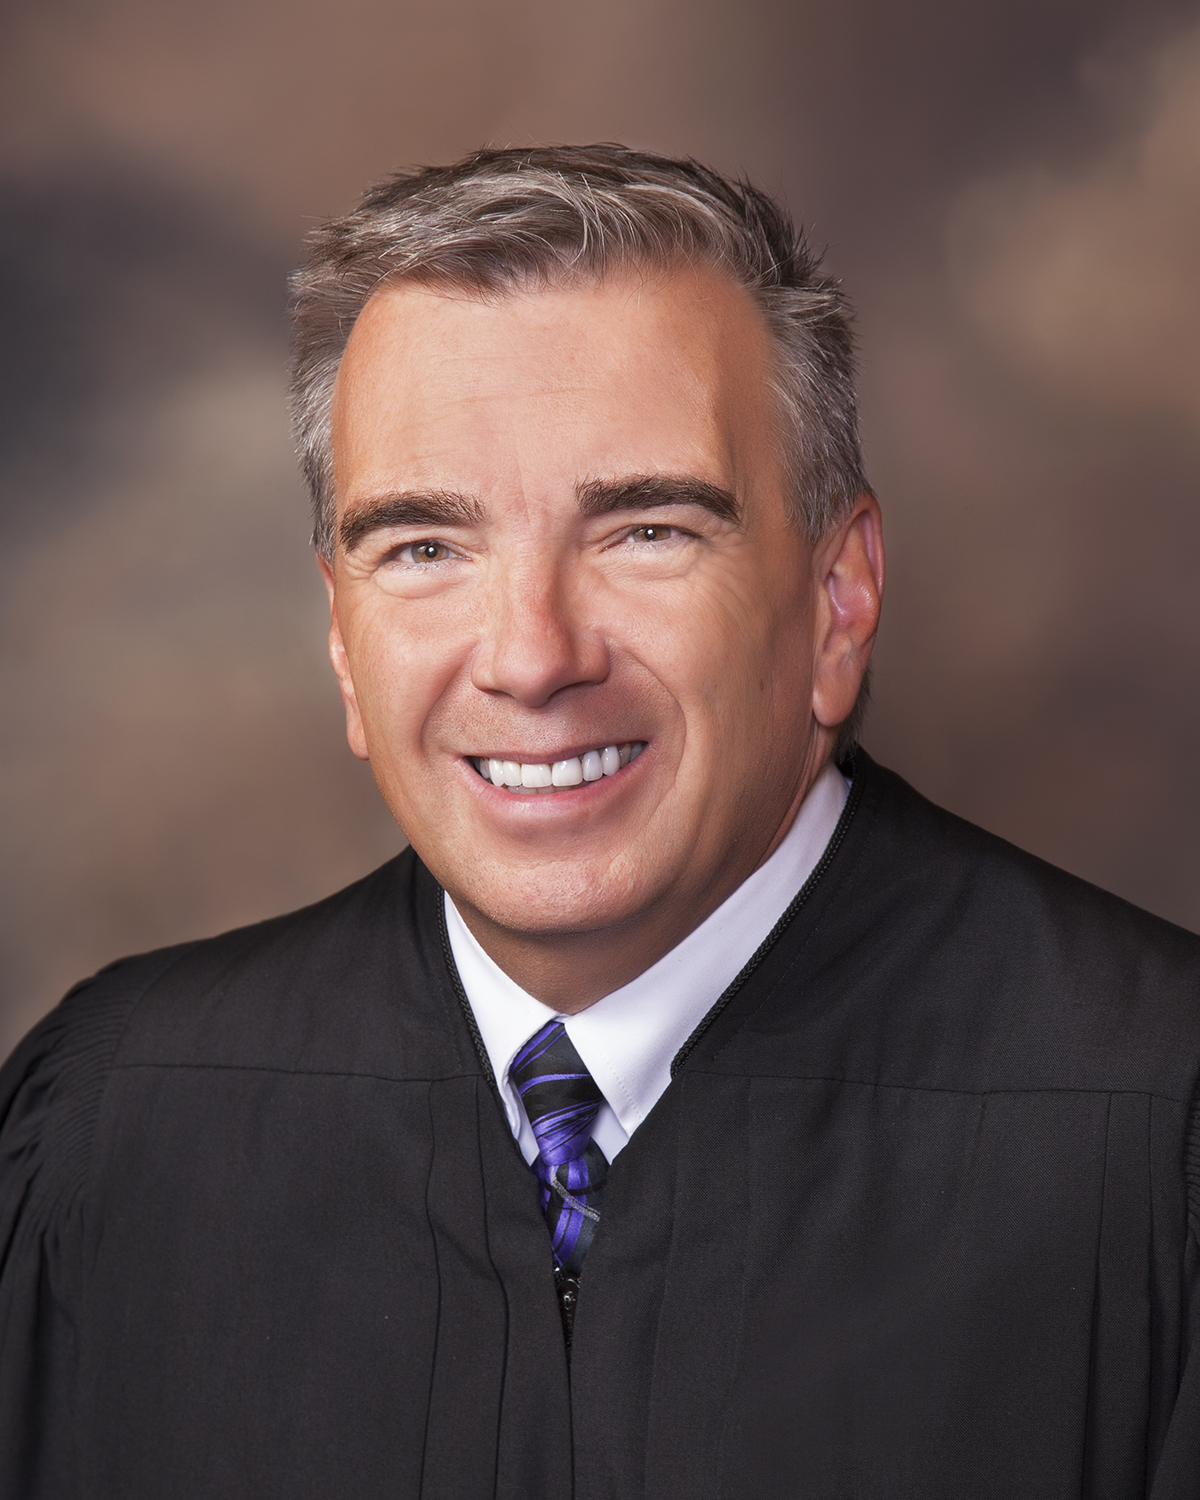 Judge Michael J. Mayer